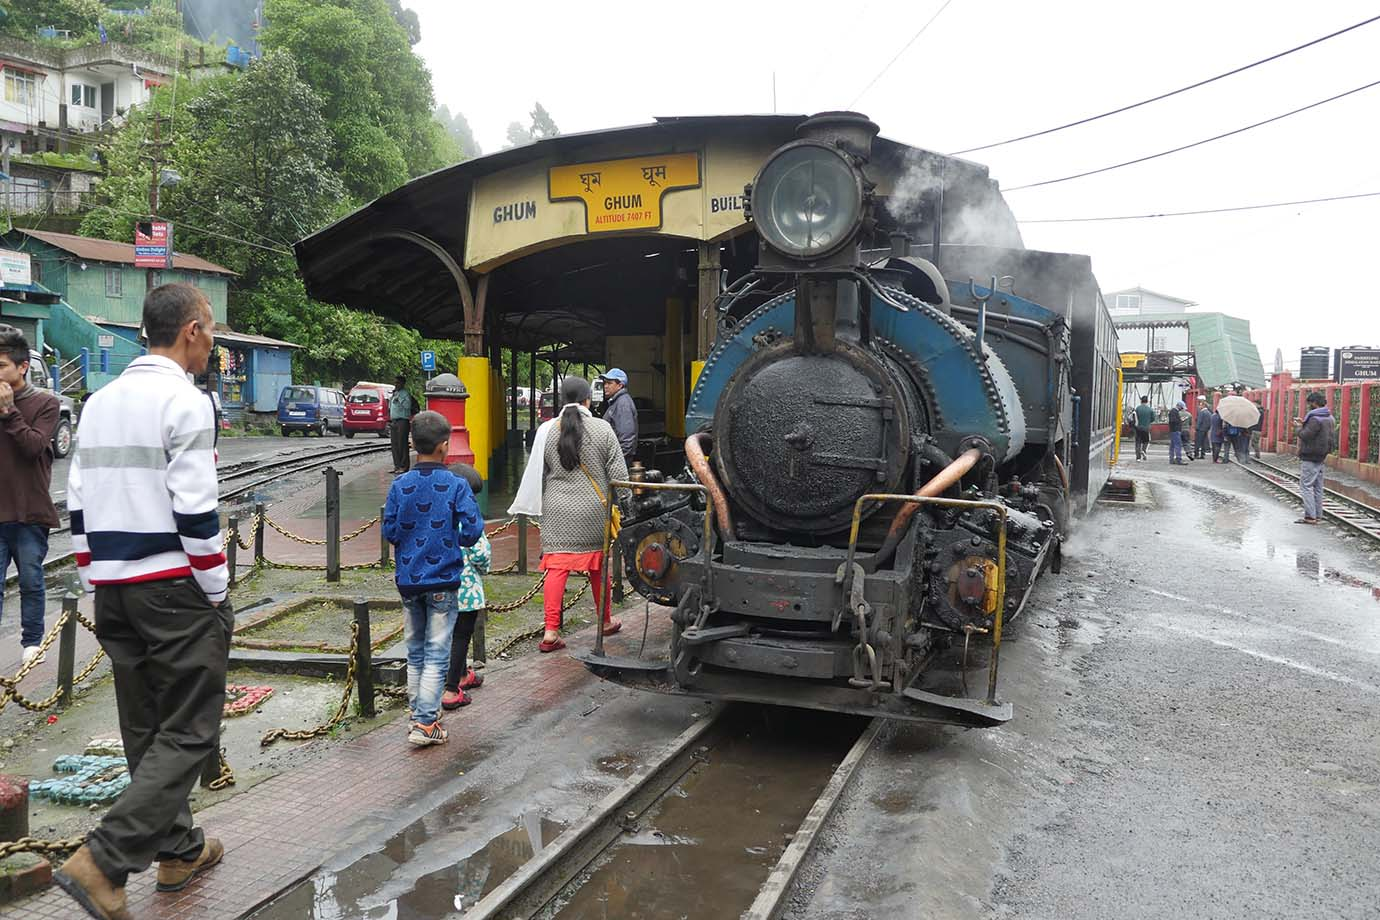 ride-darjeeling-railway-india55